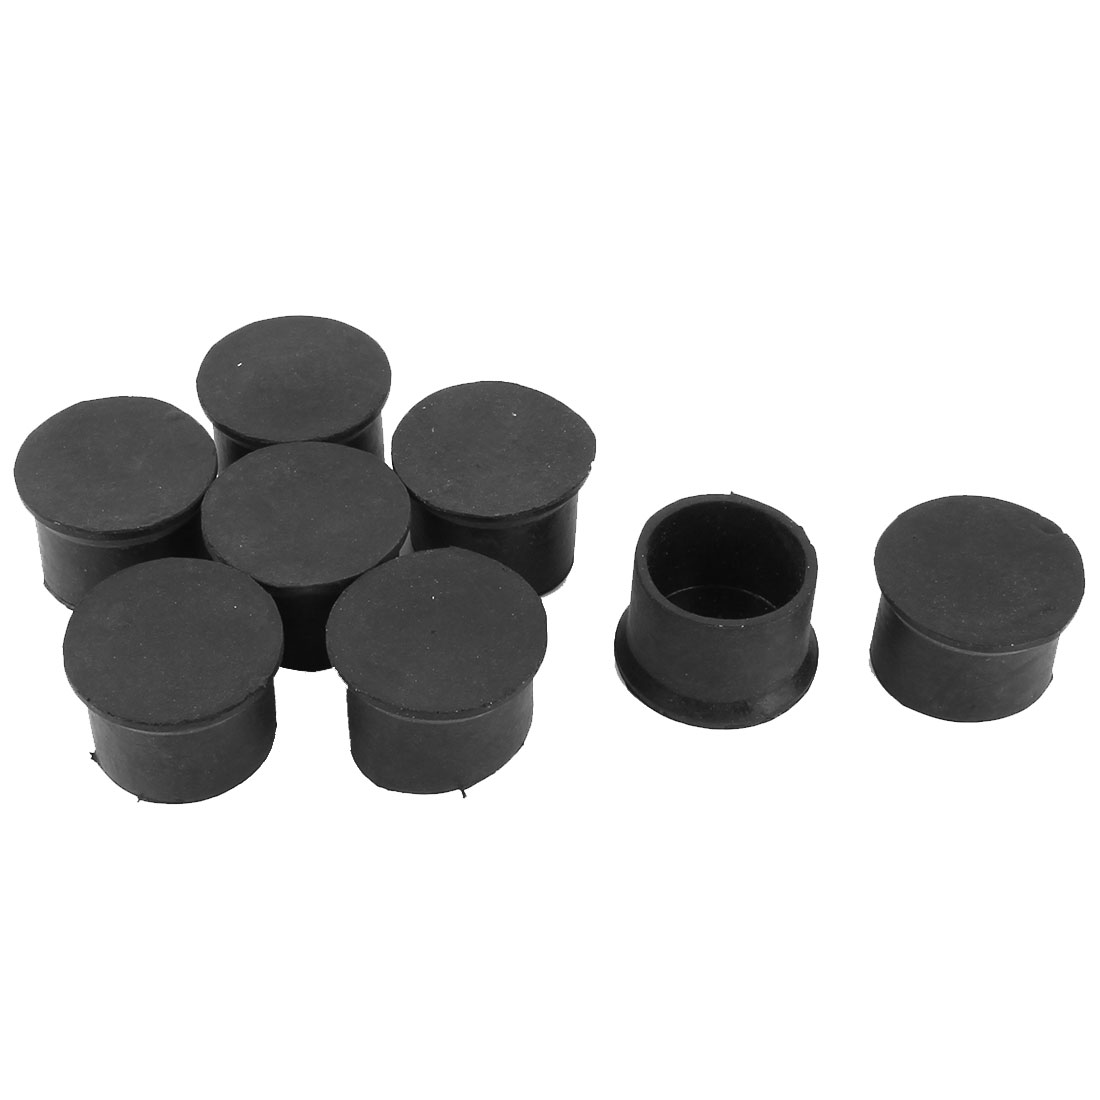 Rubber Round Furniture Chair Table Bottom Protector Feet Leg End Tip Black 50mm Inner Dia 8pcs